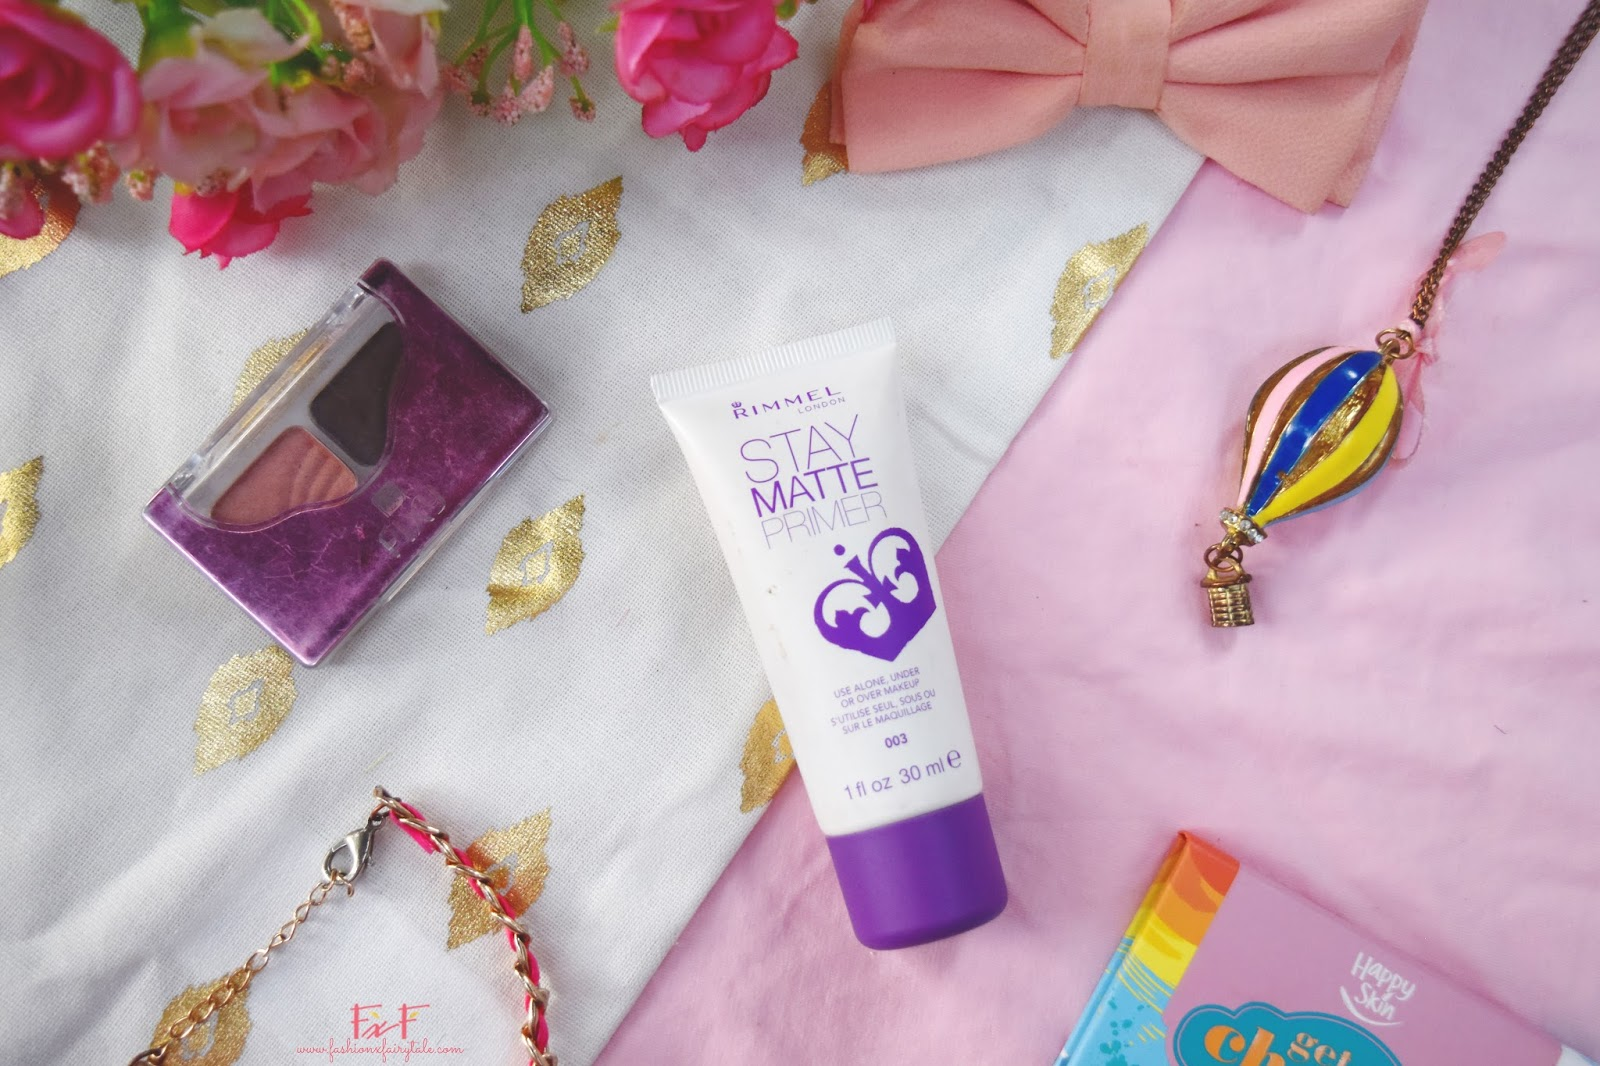 Rimmel Stay Matte Primer | Review & Swatches